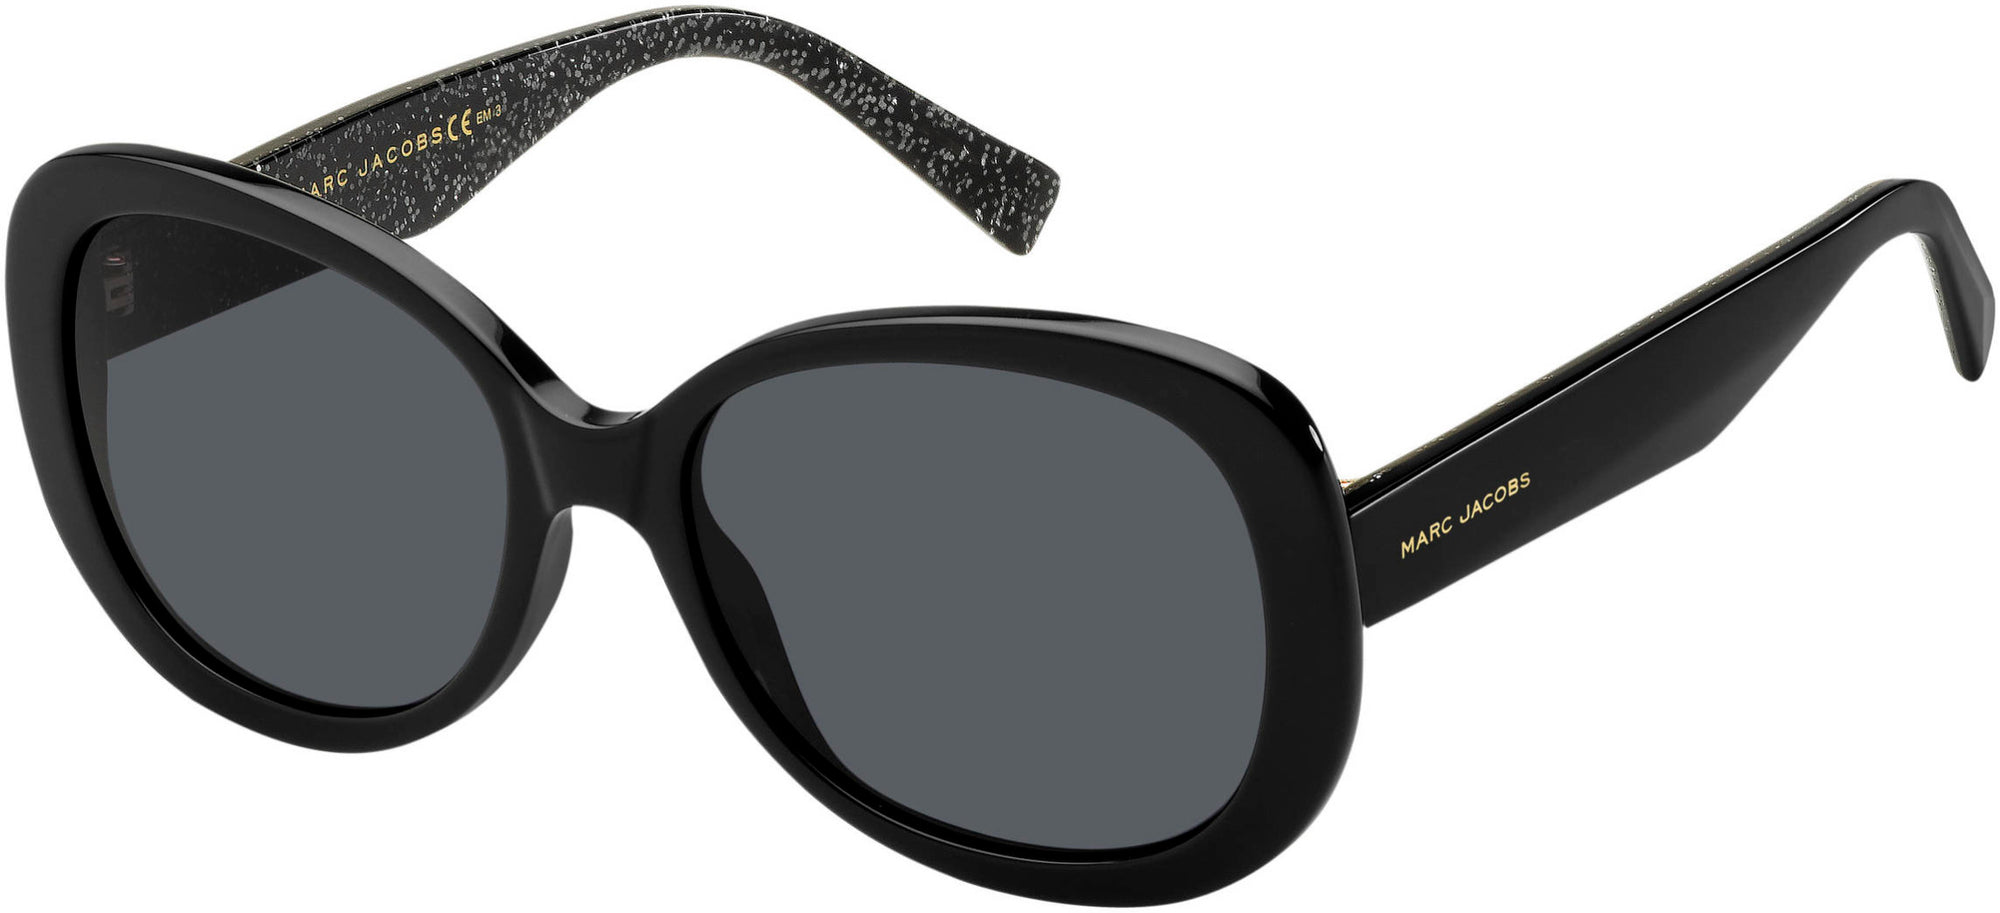 Marc Jacobs Marc 261/S Oval Modified Sunglasses 0NS8-0NS8  Black Glitter (IR Gray Blue)